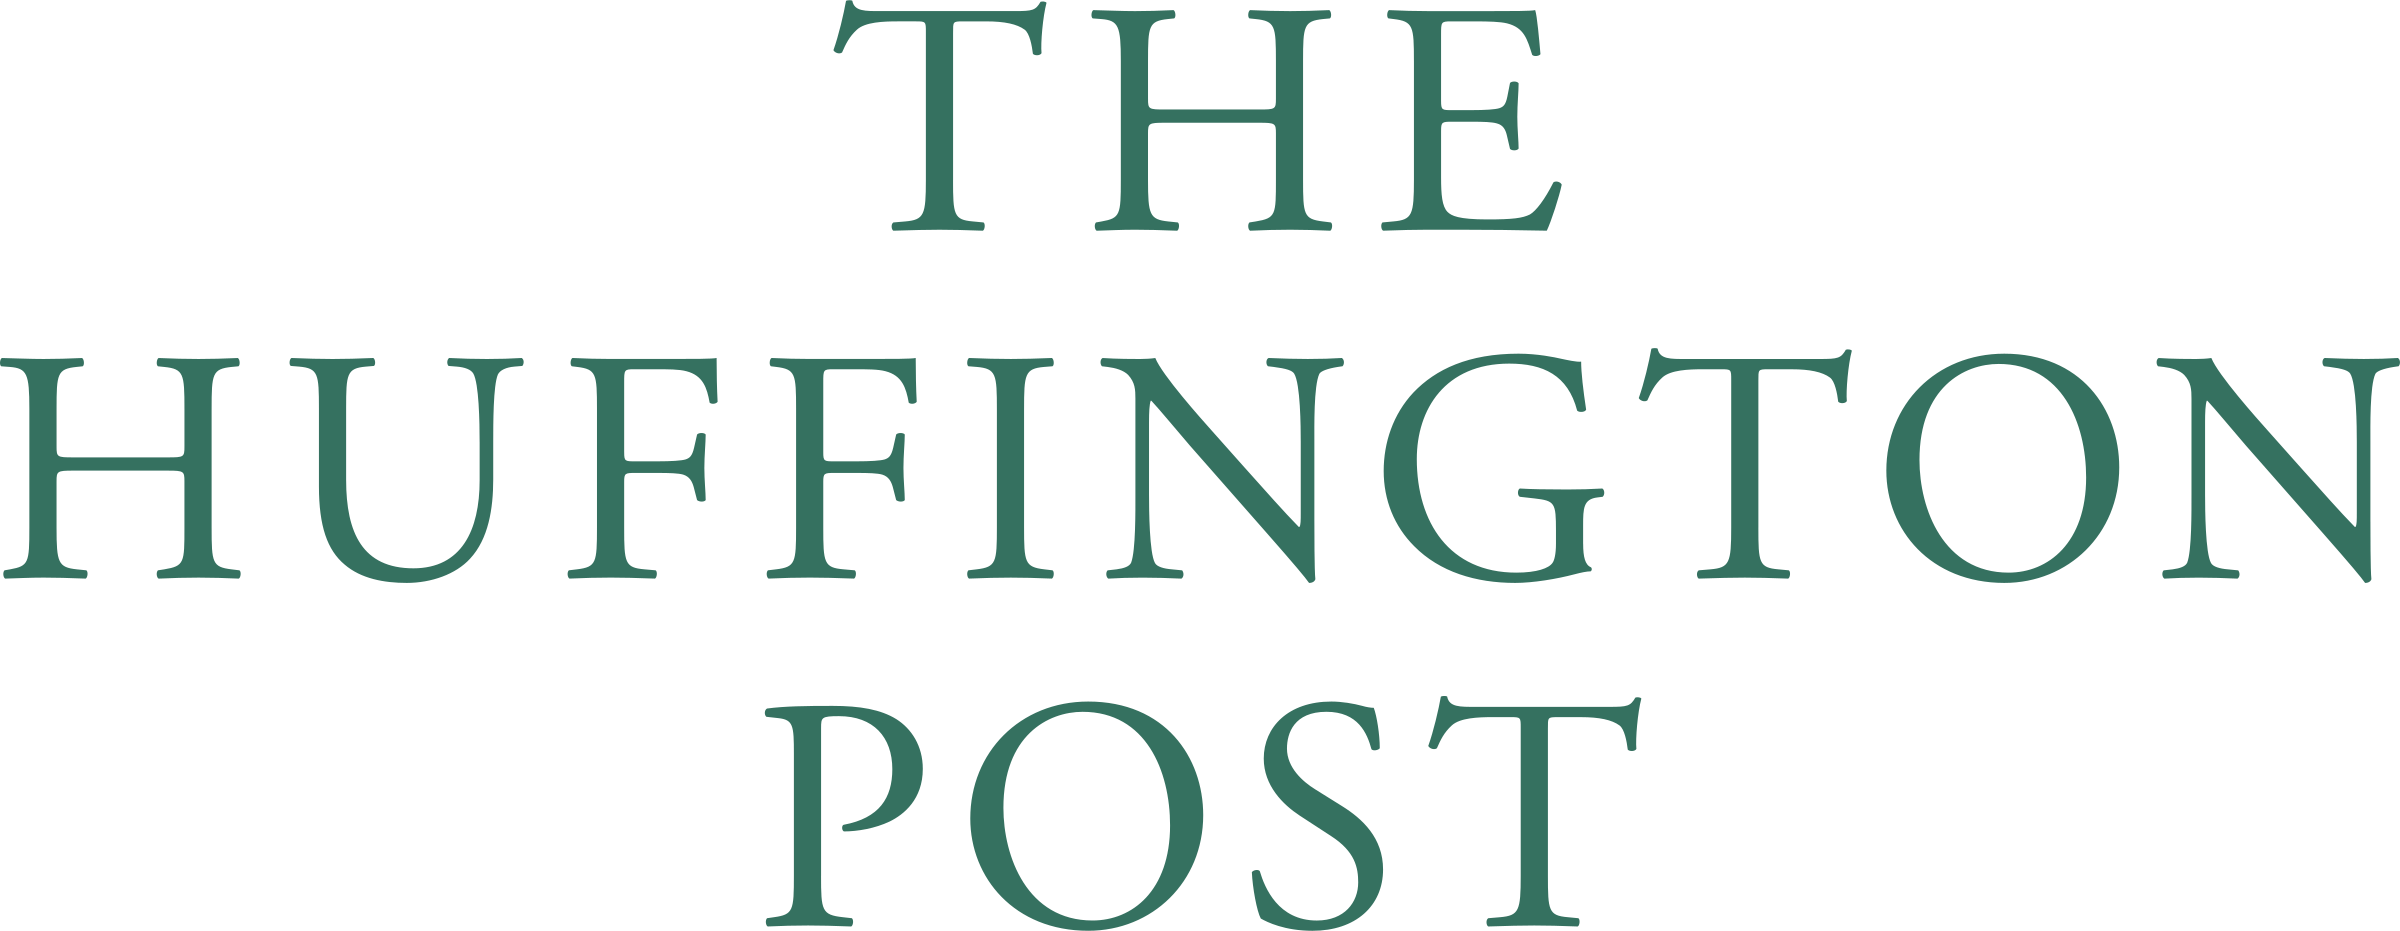 the-huffington-post-logo-png-transparent.png